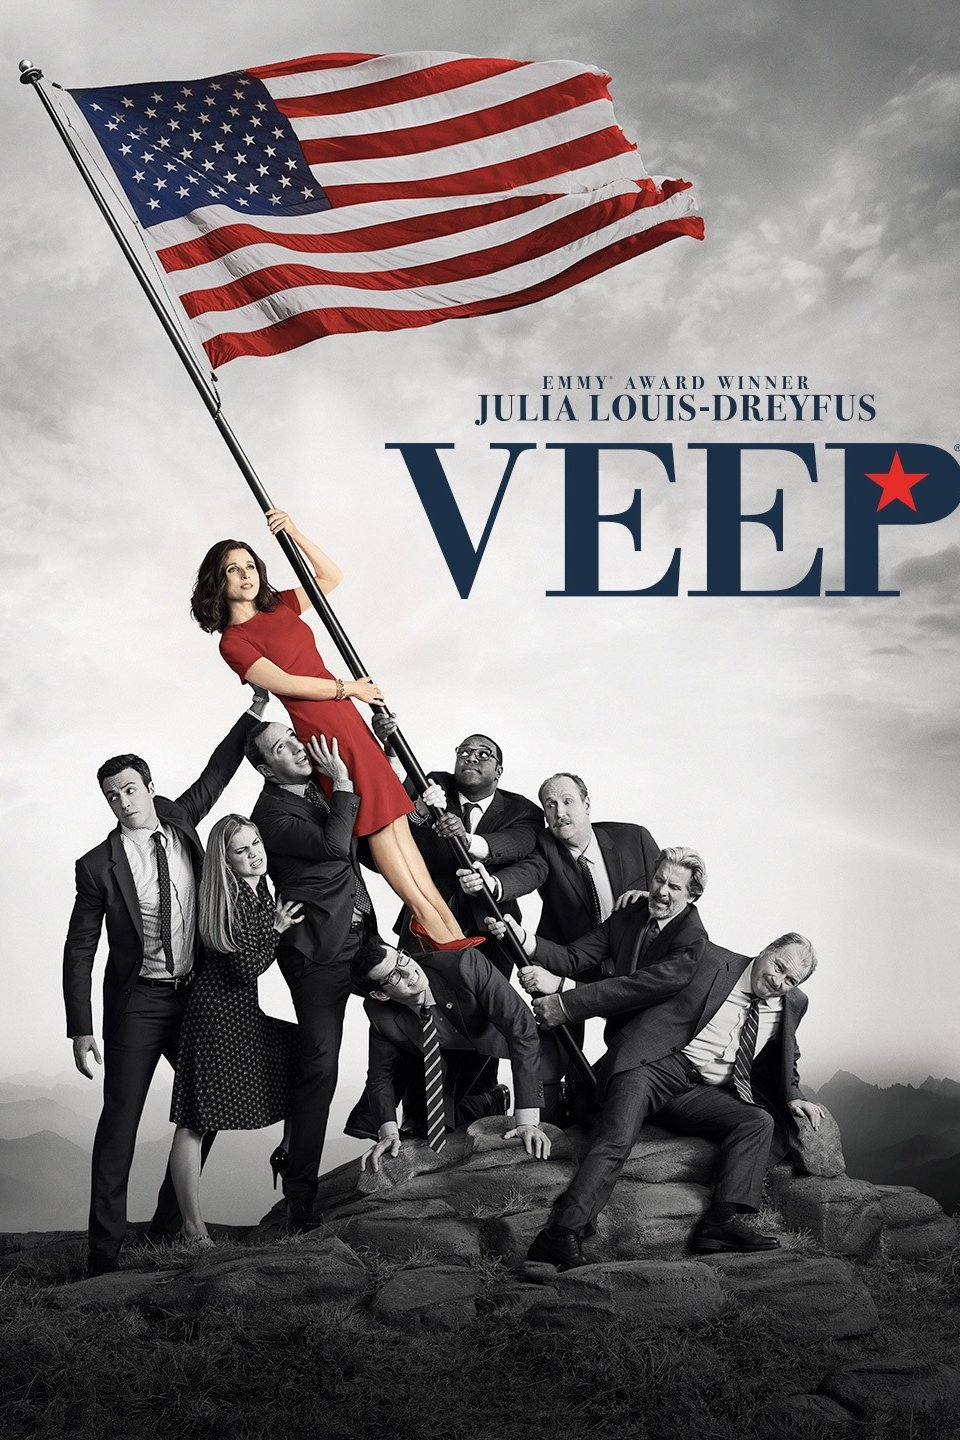 Veep Season 6 Episode 1 Download WEB-DL